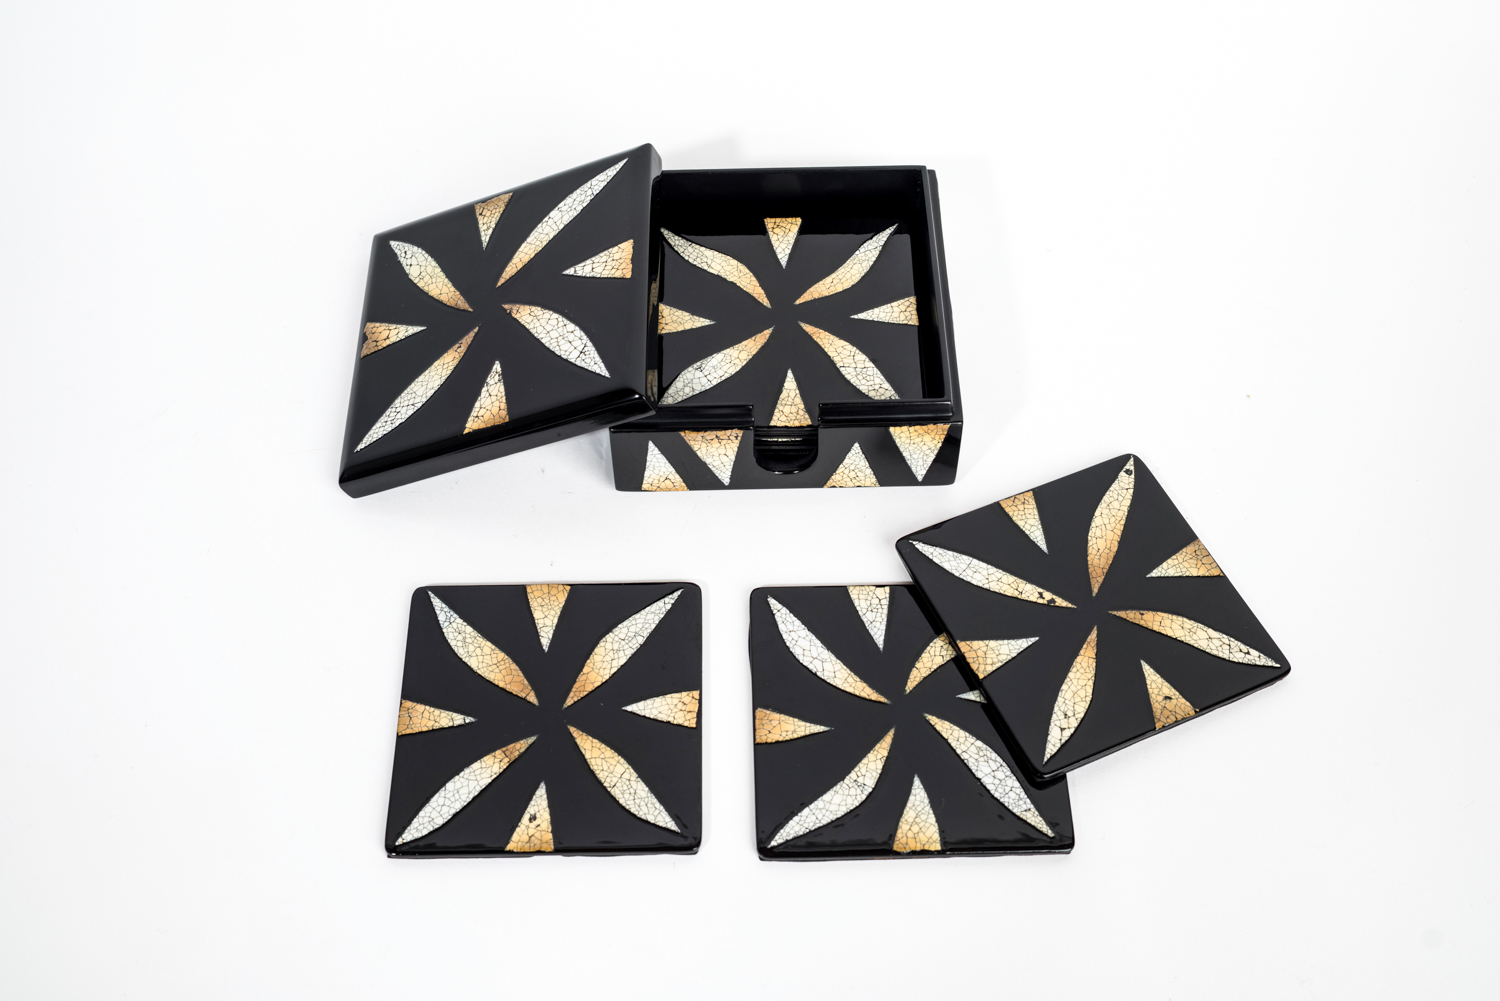 Eggshell mosaic wooden lacquer coaster set in matching lacquer box.